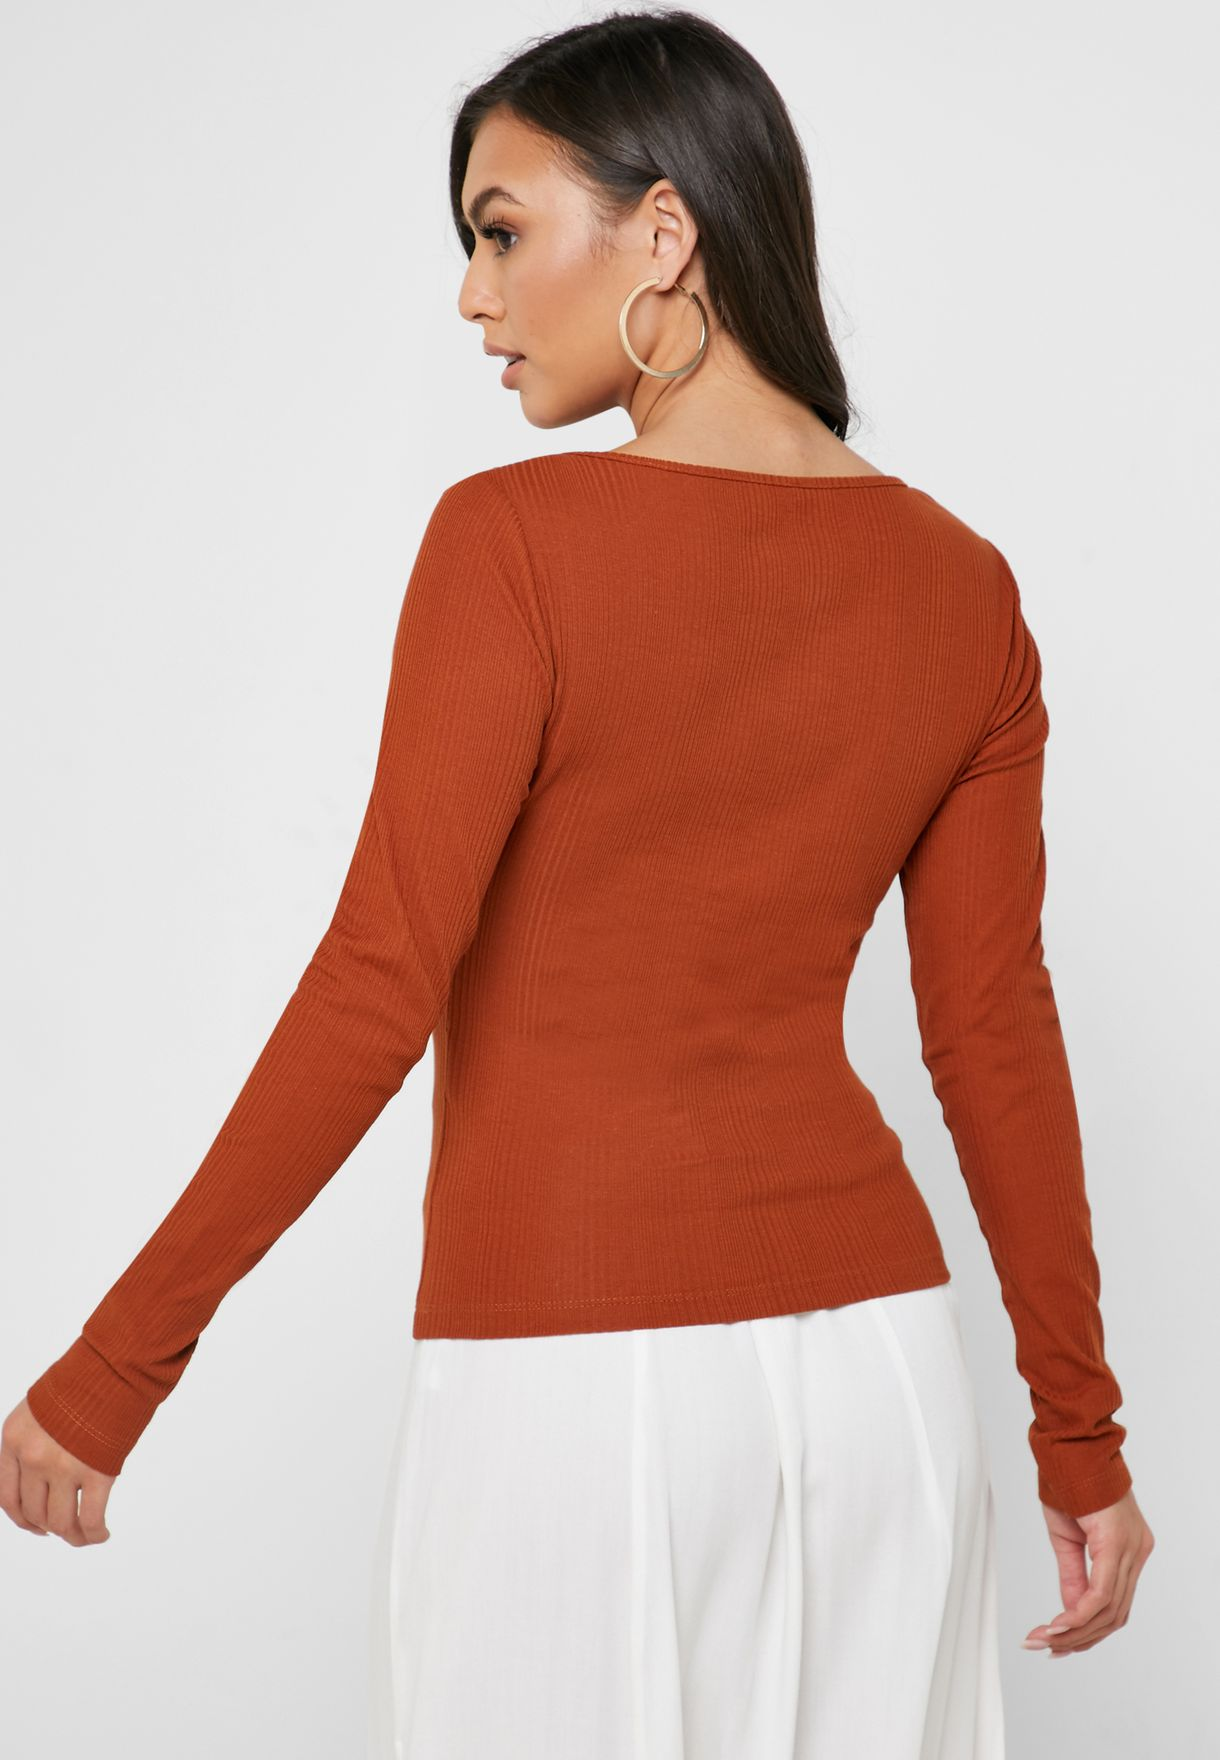 Notch Neck Top